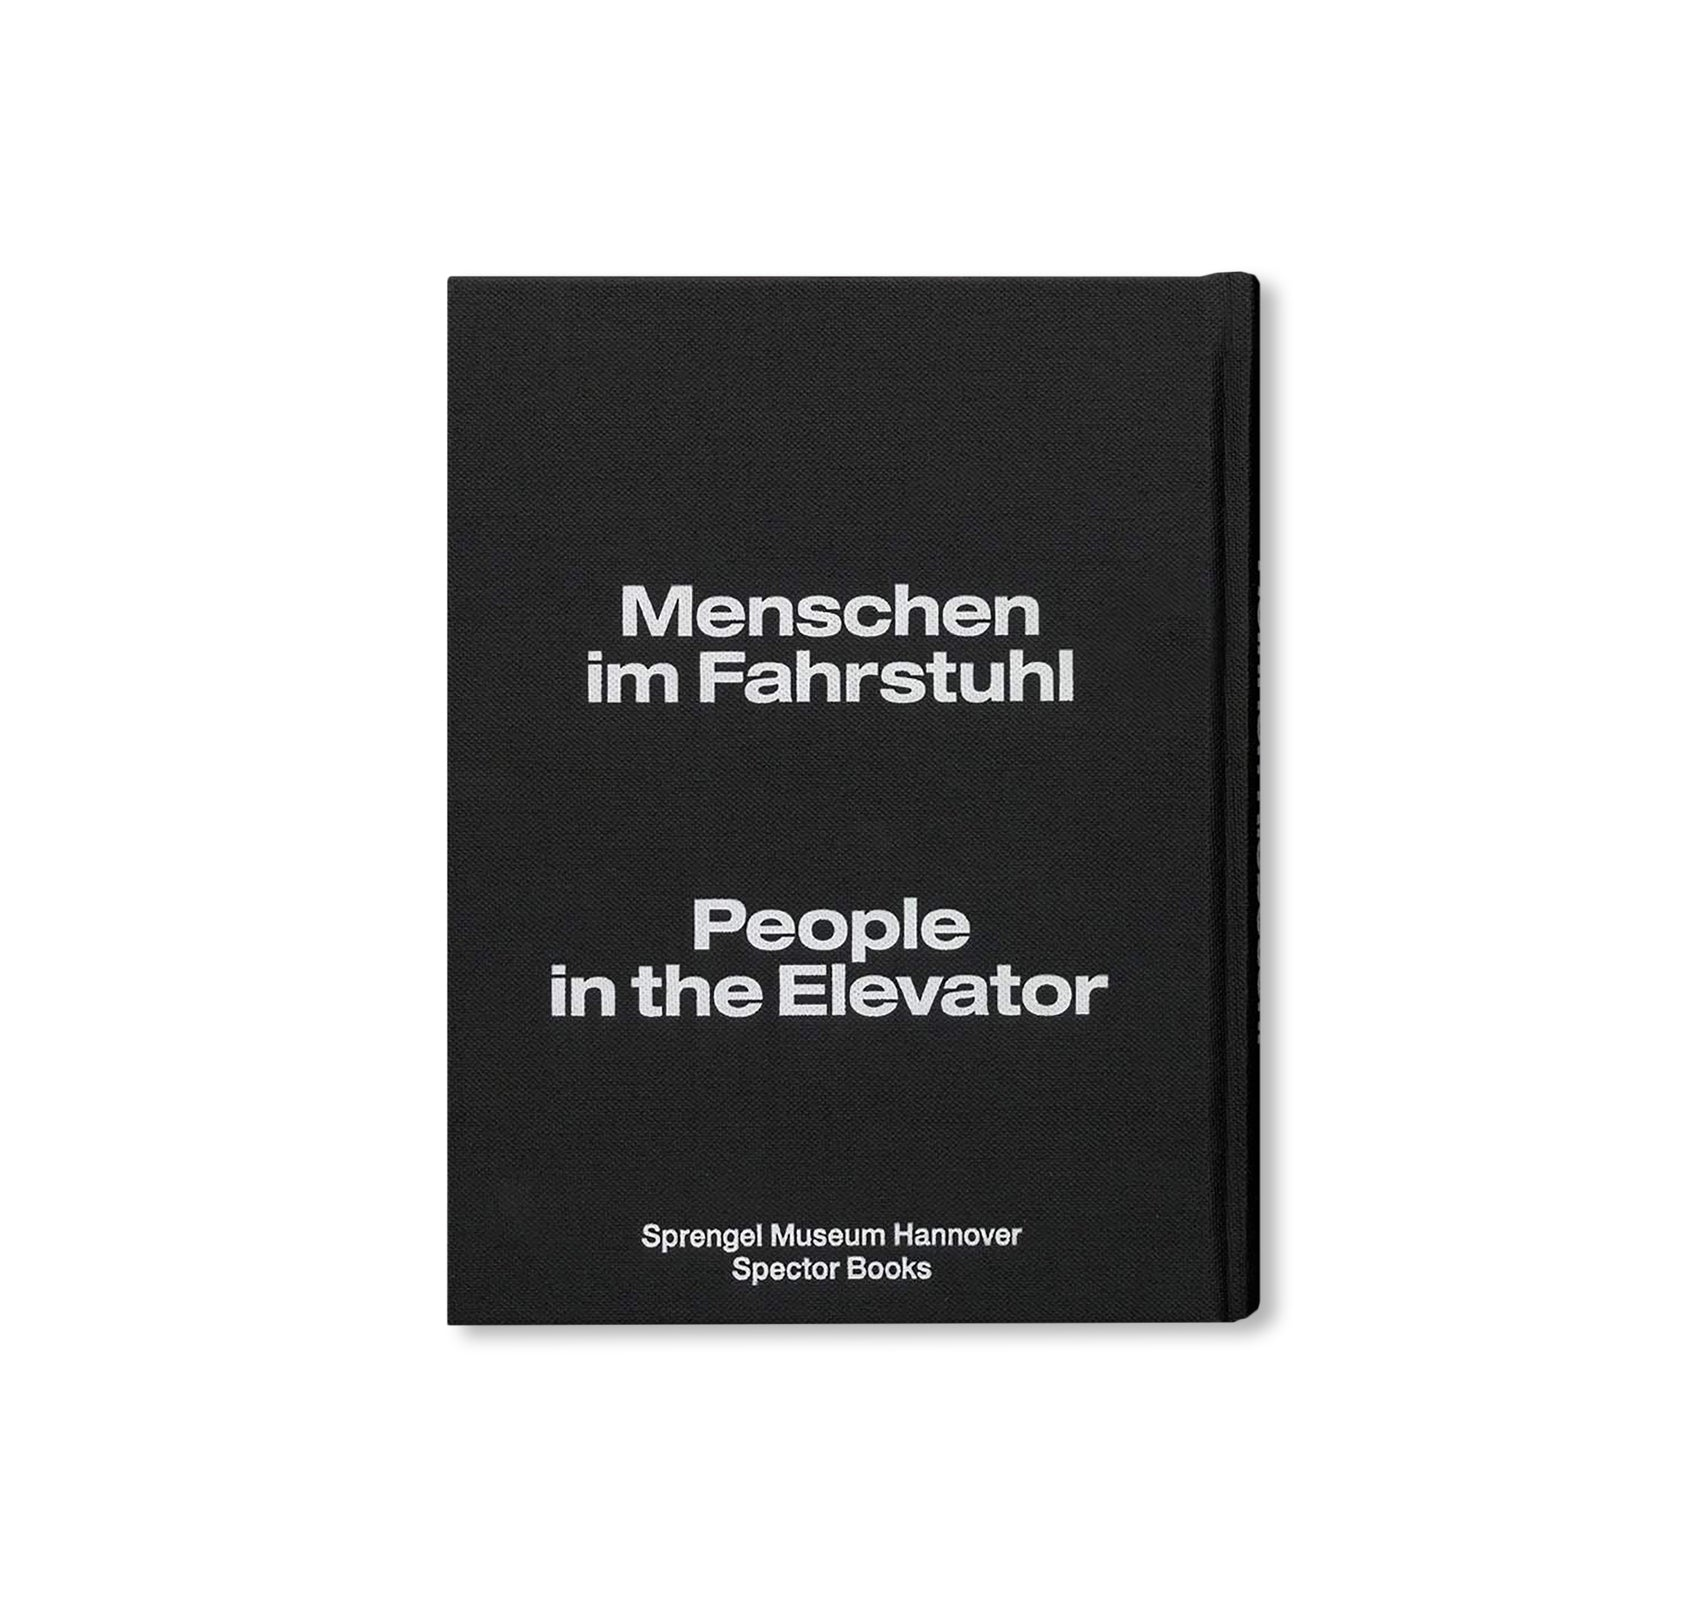 PEOPLE IN THE ELEVATOR by Heinrich Riebesehl